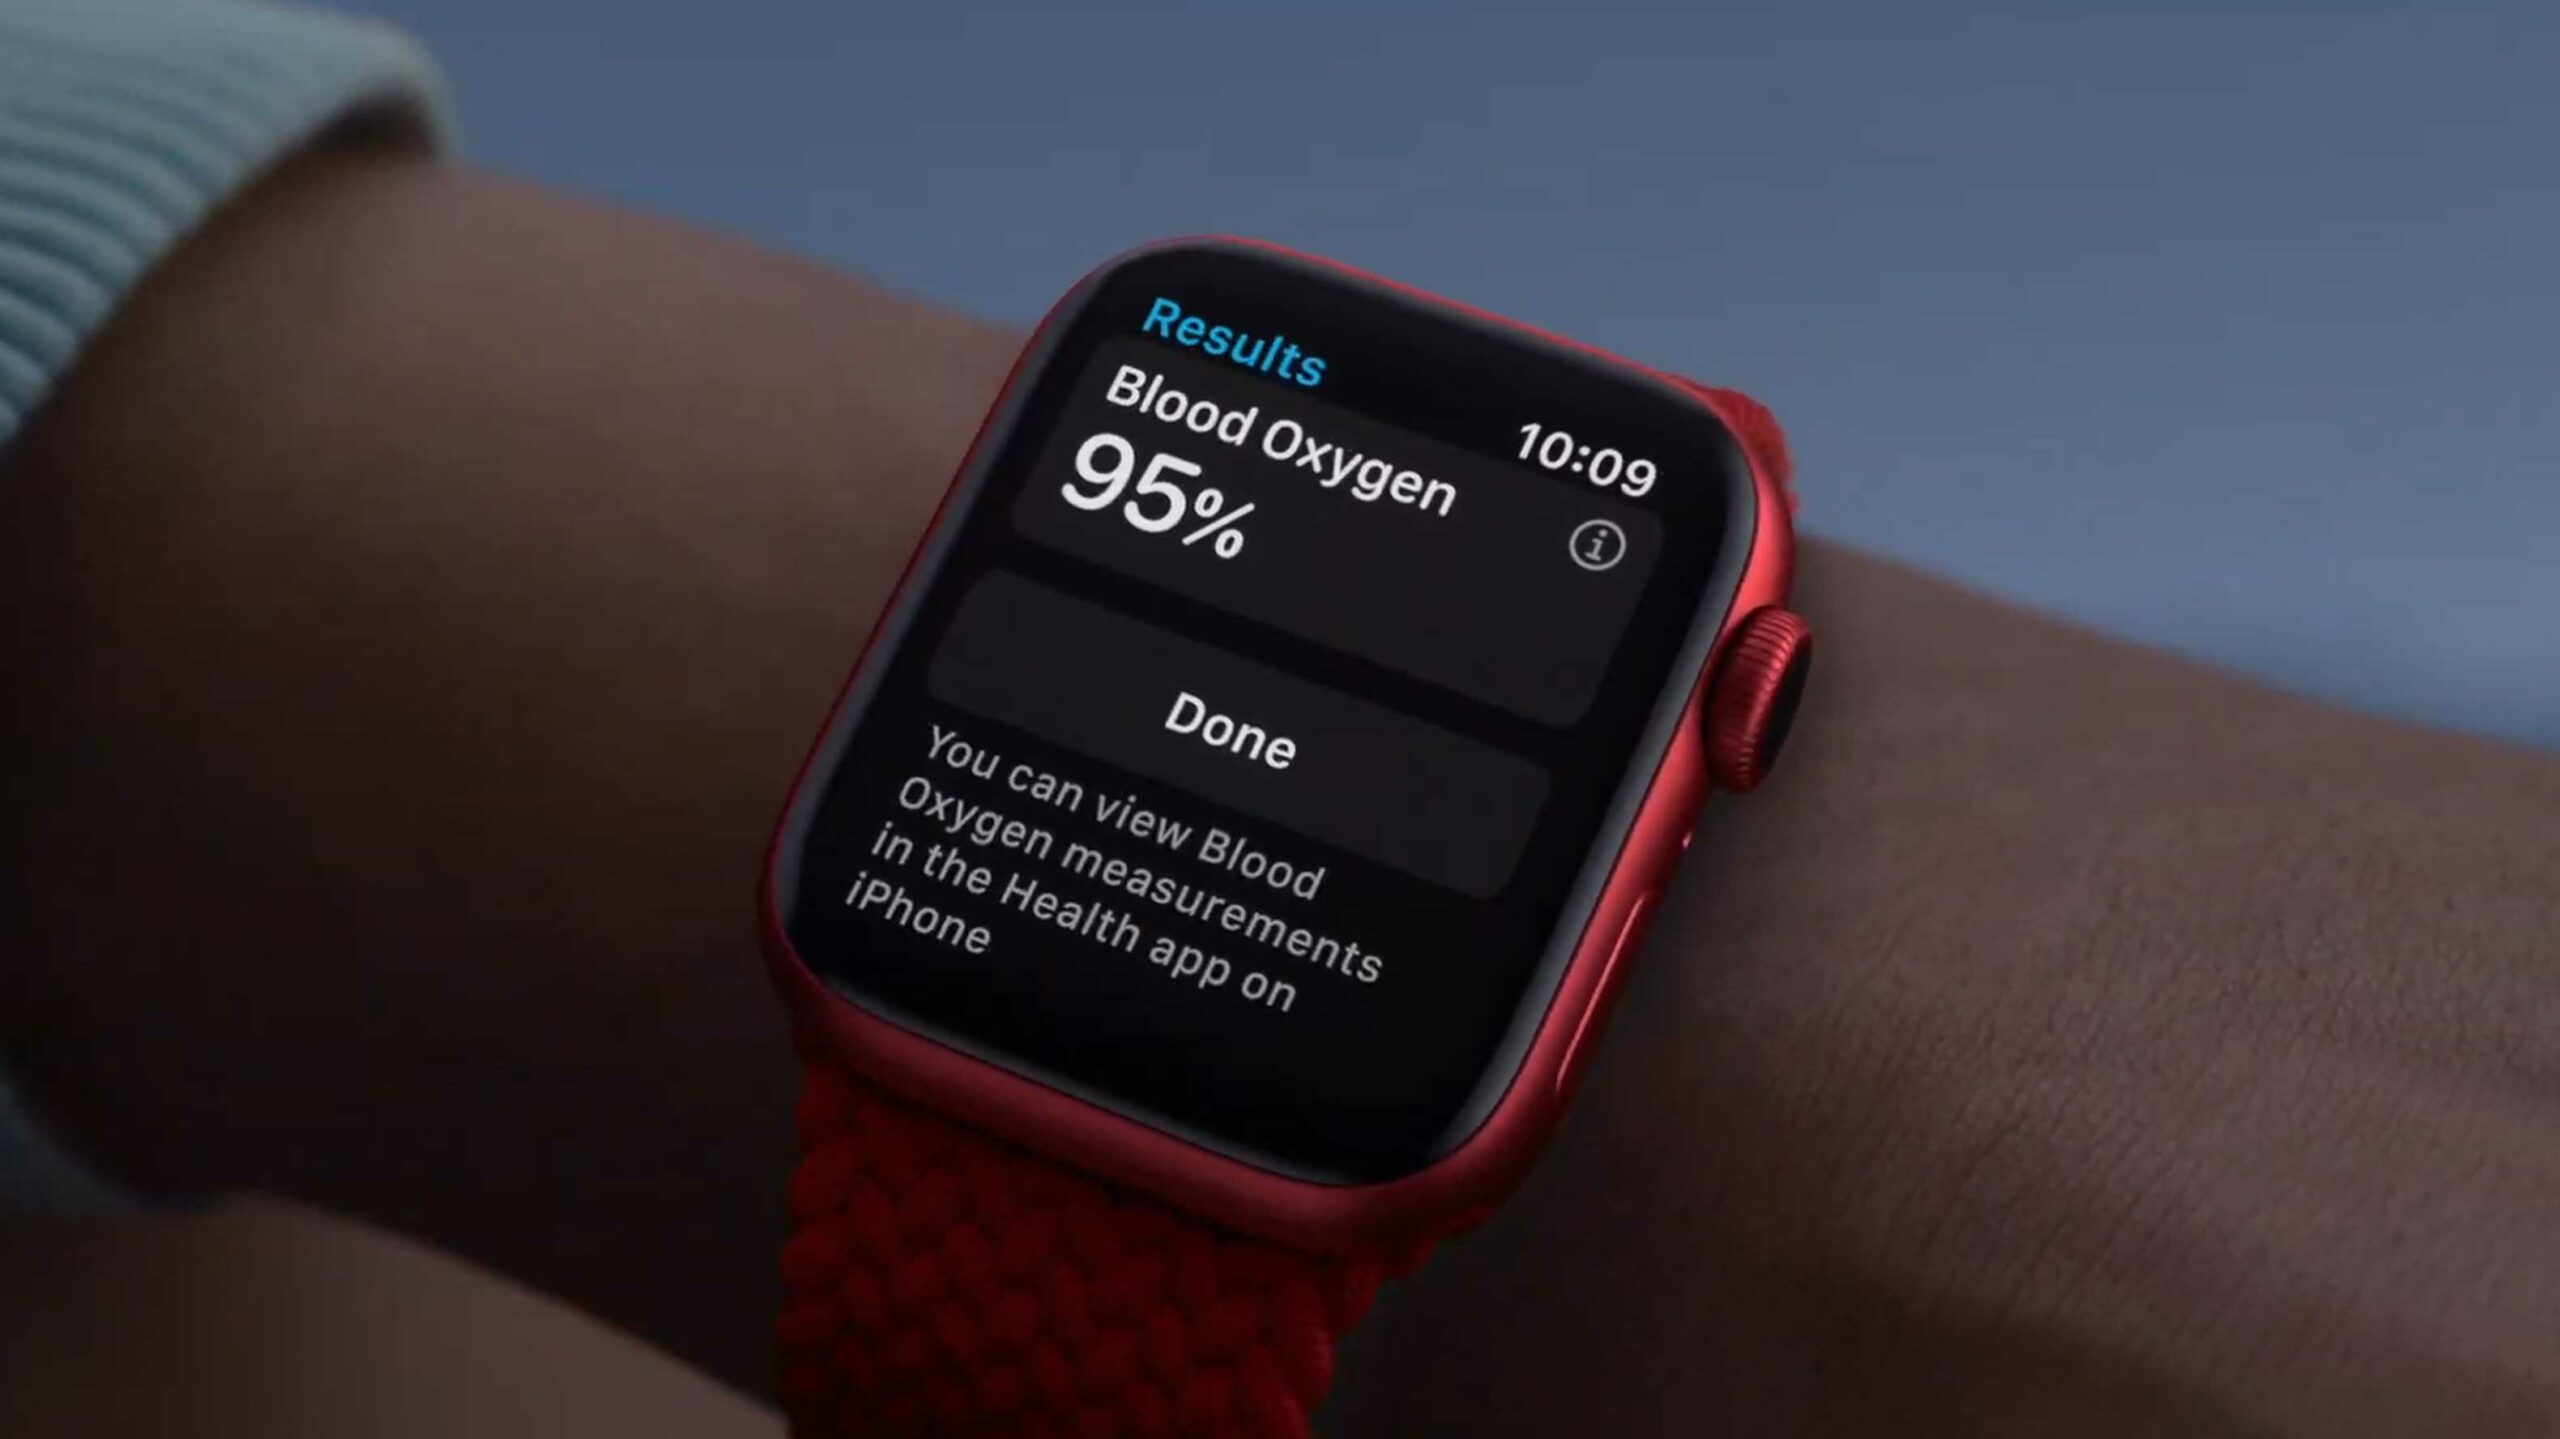 Apple announces Apple Watch Series 6 with blood oxygen level detection